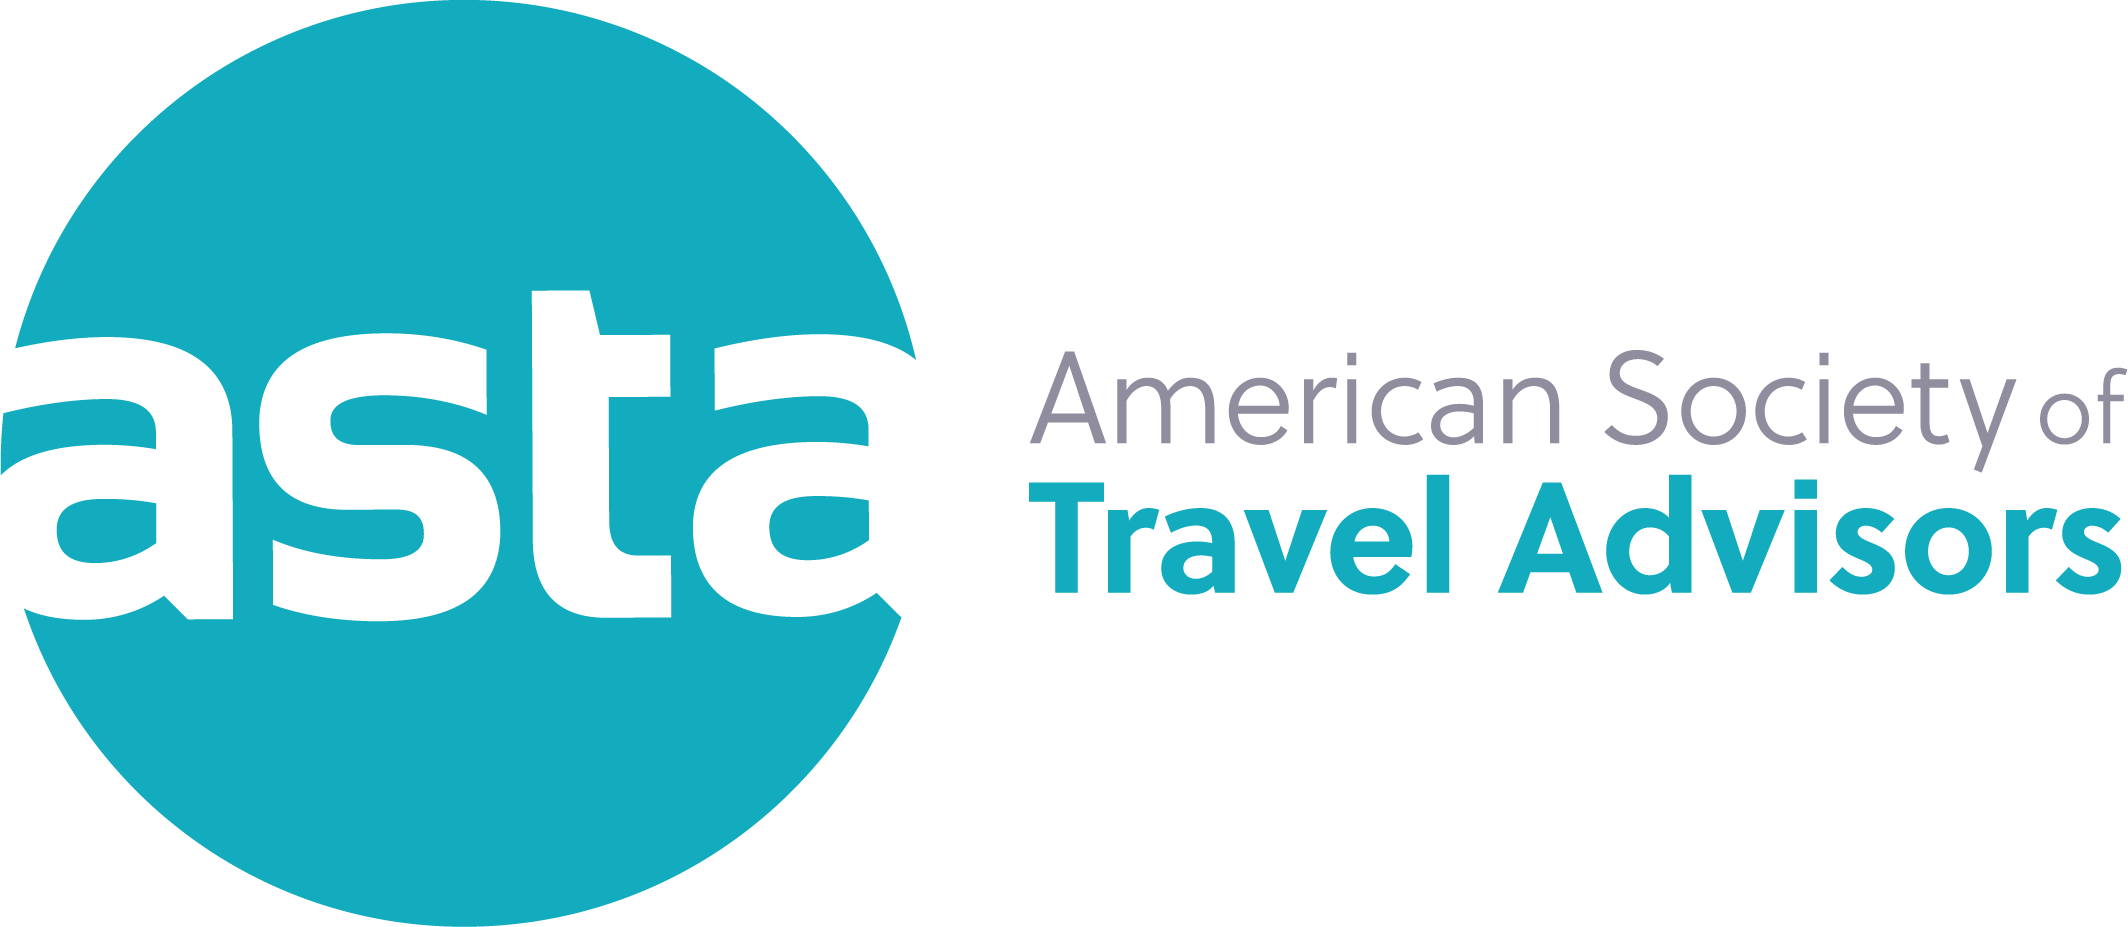 American Society of Travel Advisors, Jacob Marek Member IntroverTravels